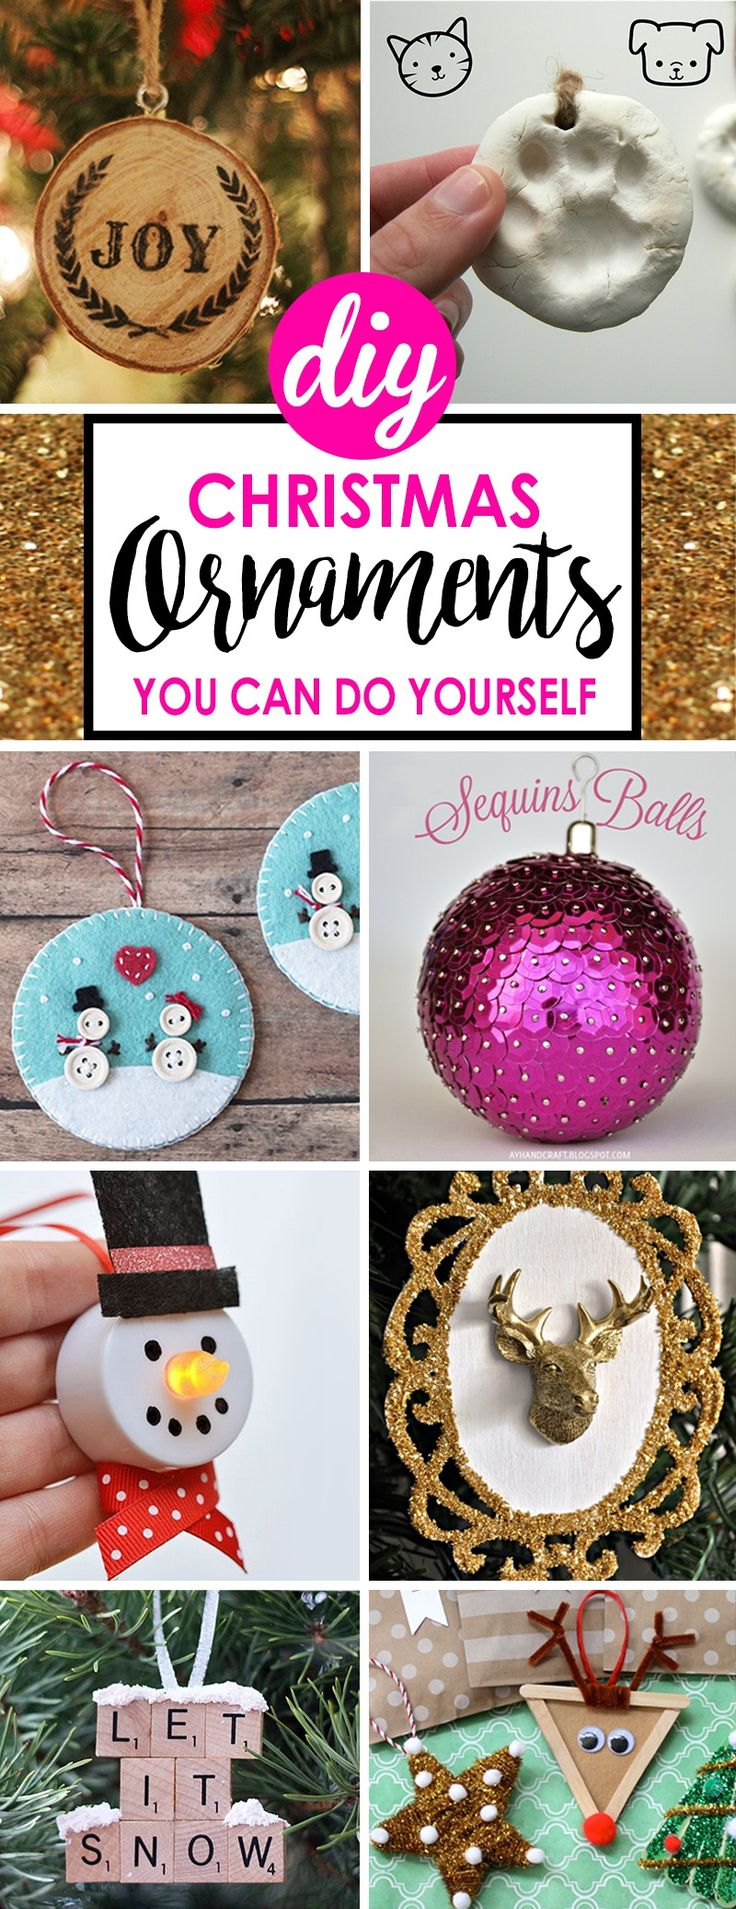 Very few events throughout the year compare to the joy and excitement of the approaching Christmas season. And whether you fancy yourself a seasoned crafter or you're more of an artistic novice who just wants to create some beautiful Christmas decor, there's always a good reason to start a DIY C...